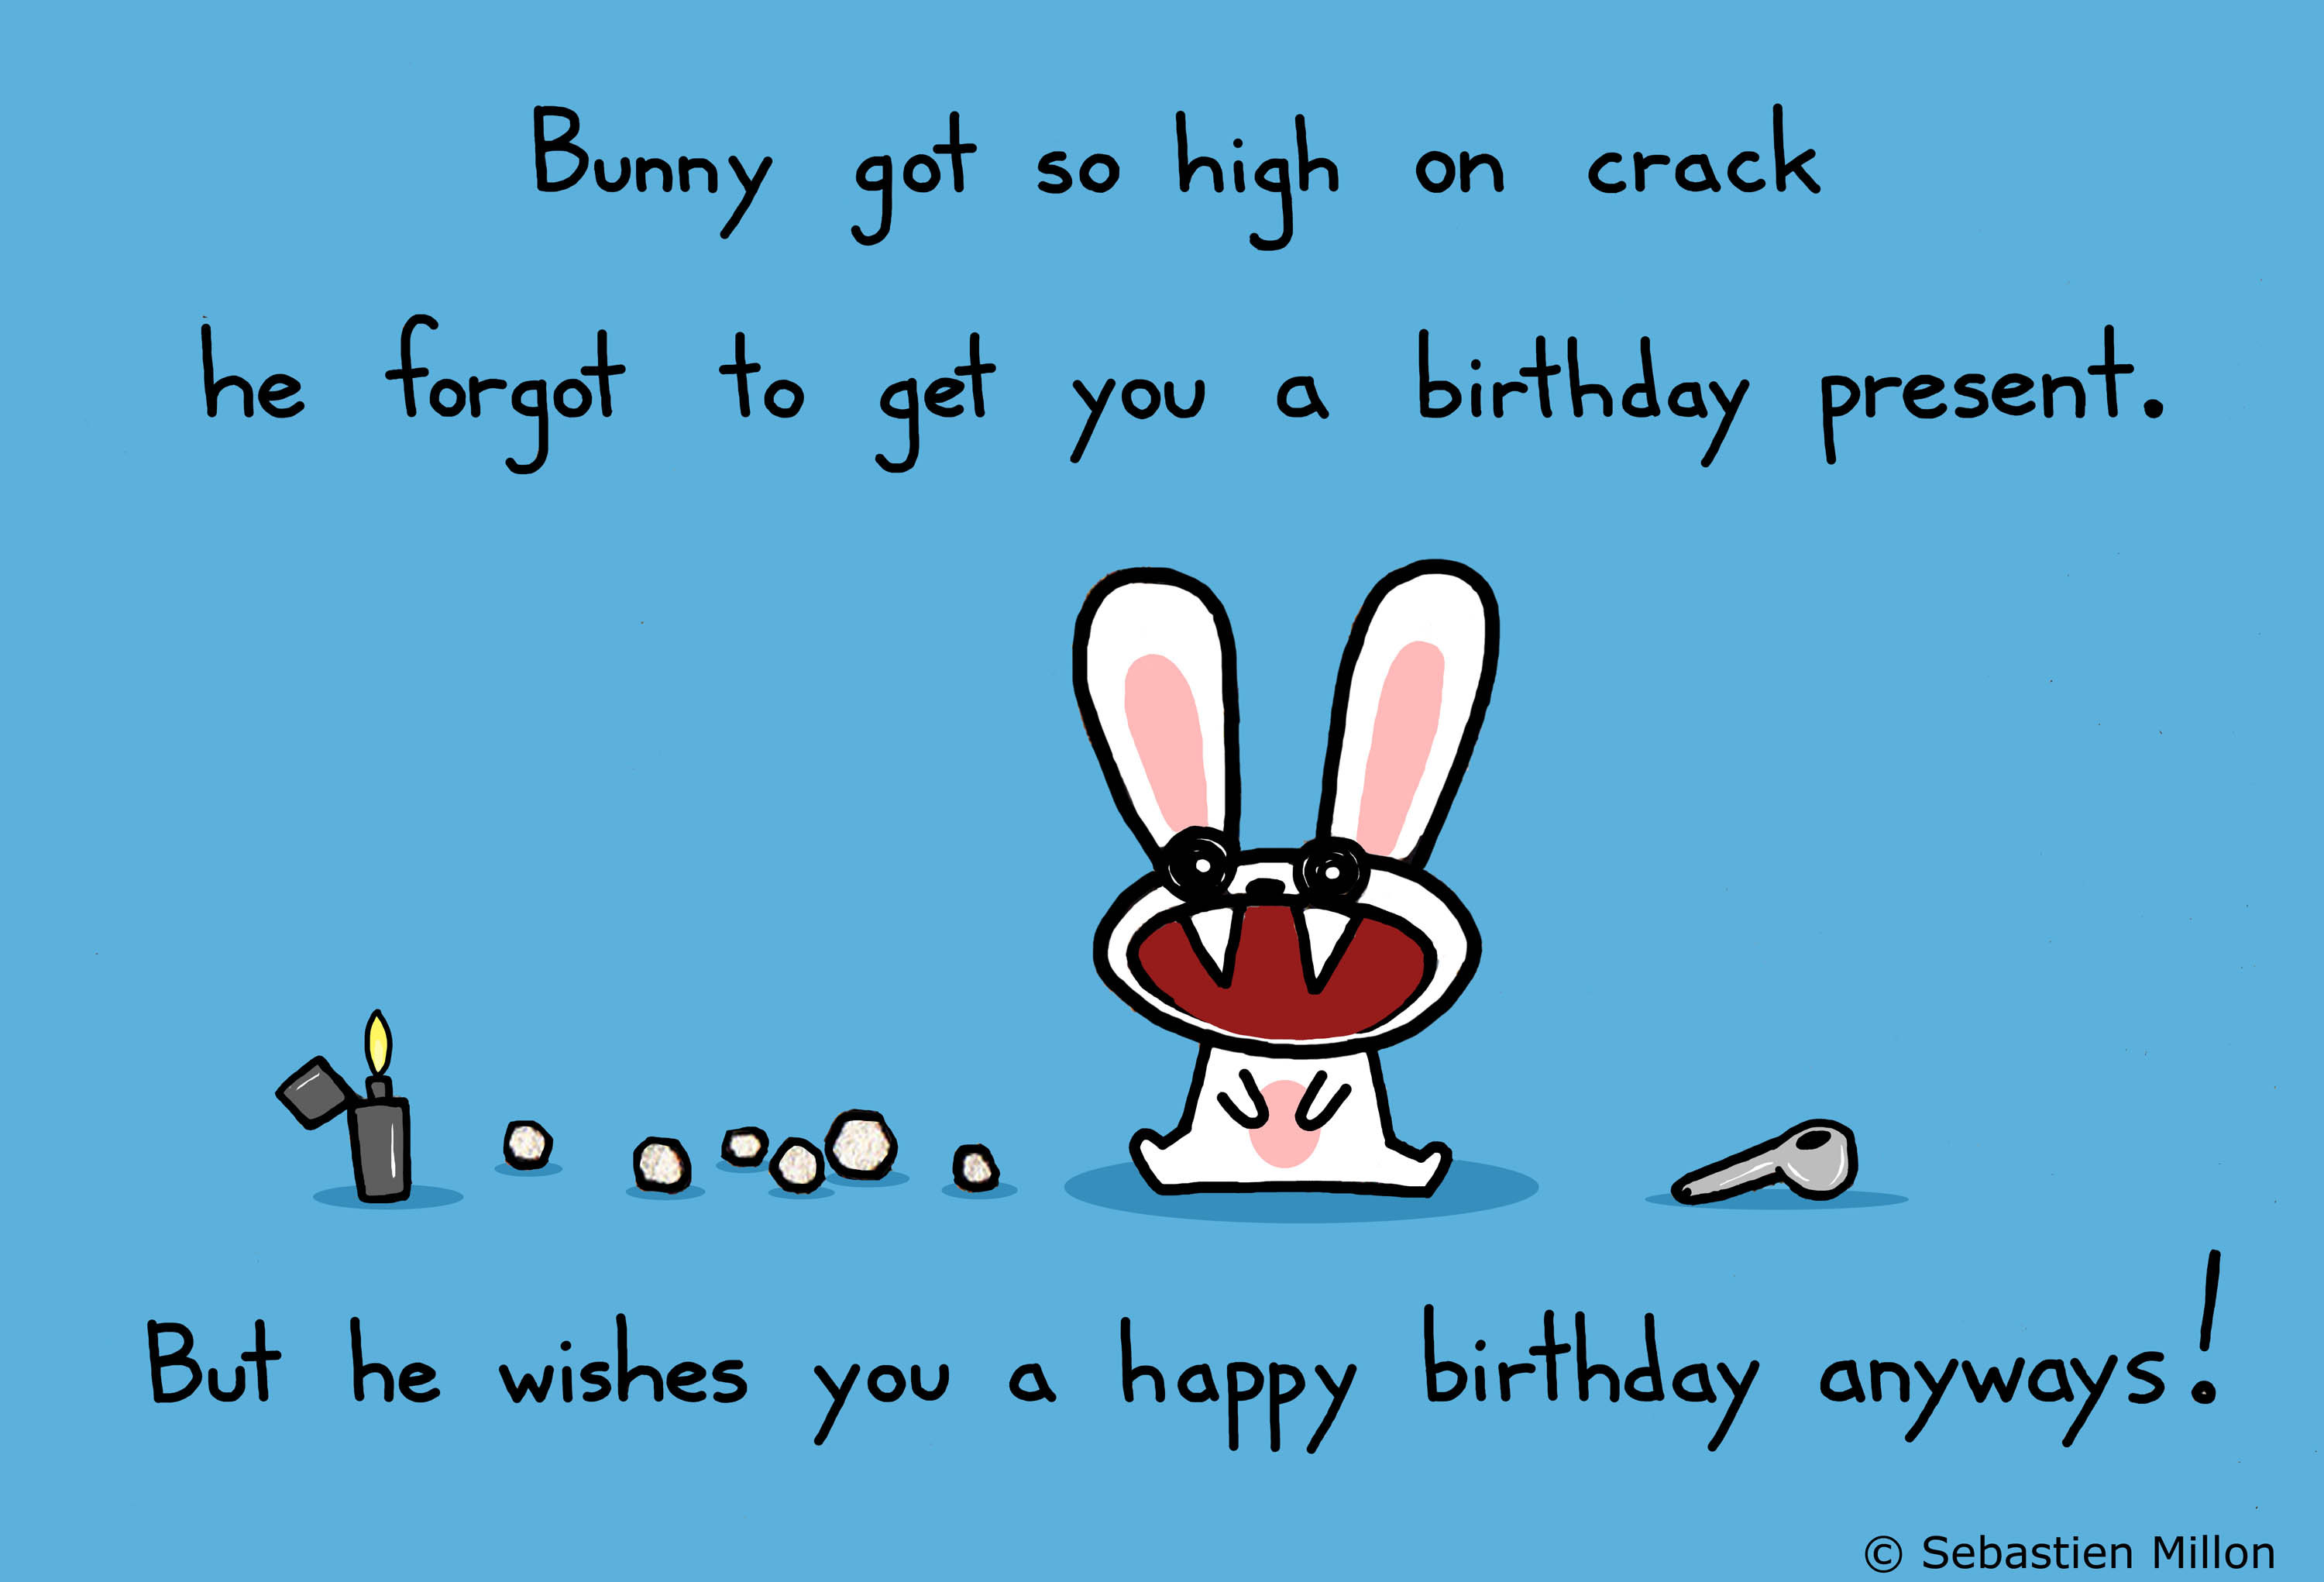 happy birthday wish funny images ; Bunny-Got-So-High-On-Crack-He-Frogot-To-Get-You-A-Birthday-Present-Funny-Birthday-Wishes-Picture